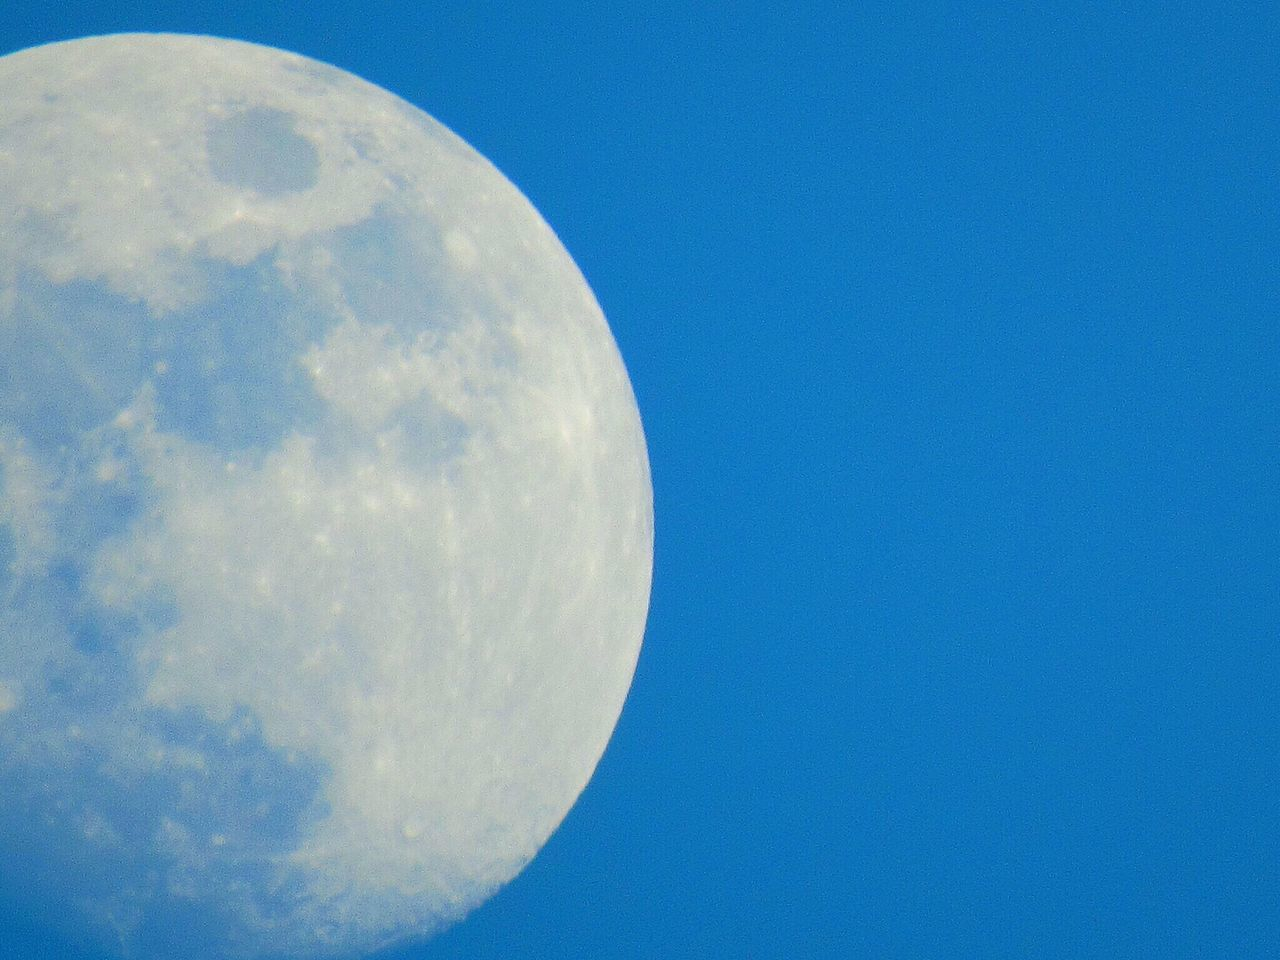 moon, circle, blue, low angle view, nature, moon surface, beauty in nature, astronomy, outdoors, no people, clear sky, semi-circle, sky, scenics, half moon, space, day, close-up